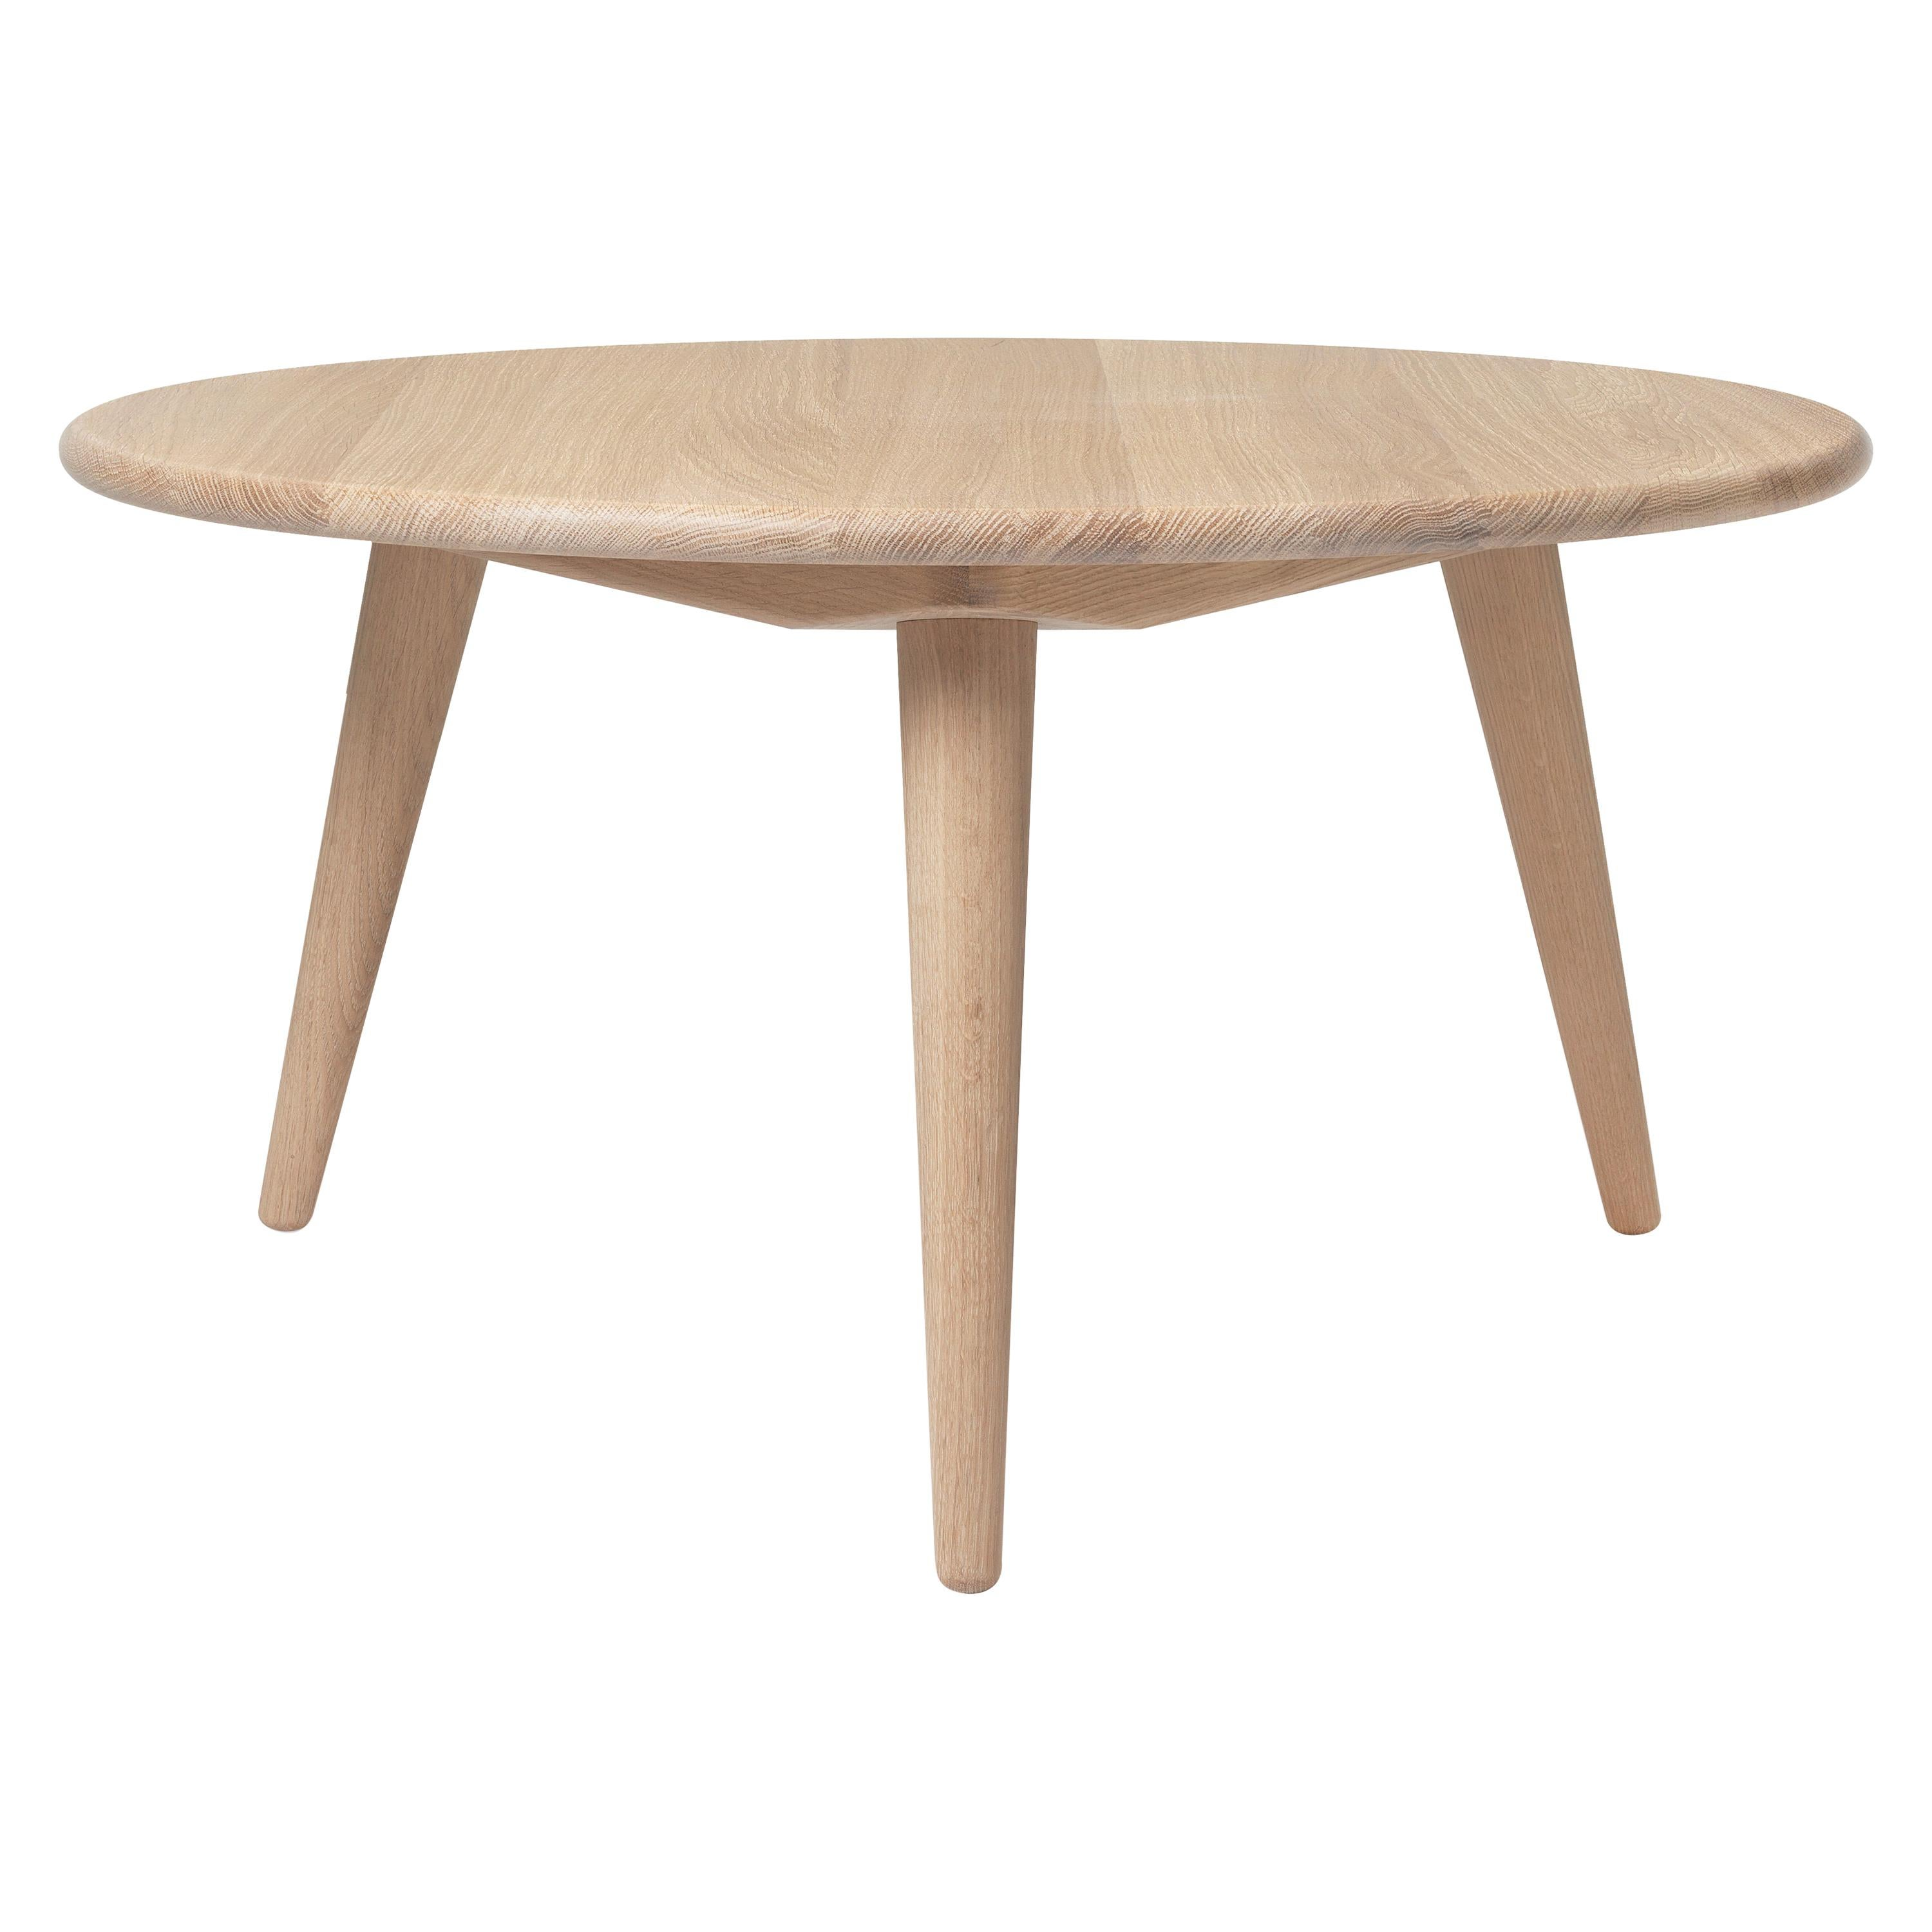 CH008 Small Coffee Table in Wood by Hans J. Wegner